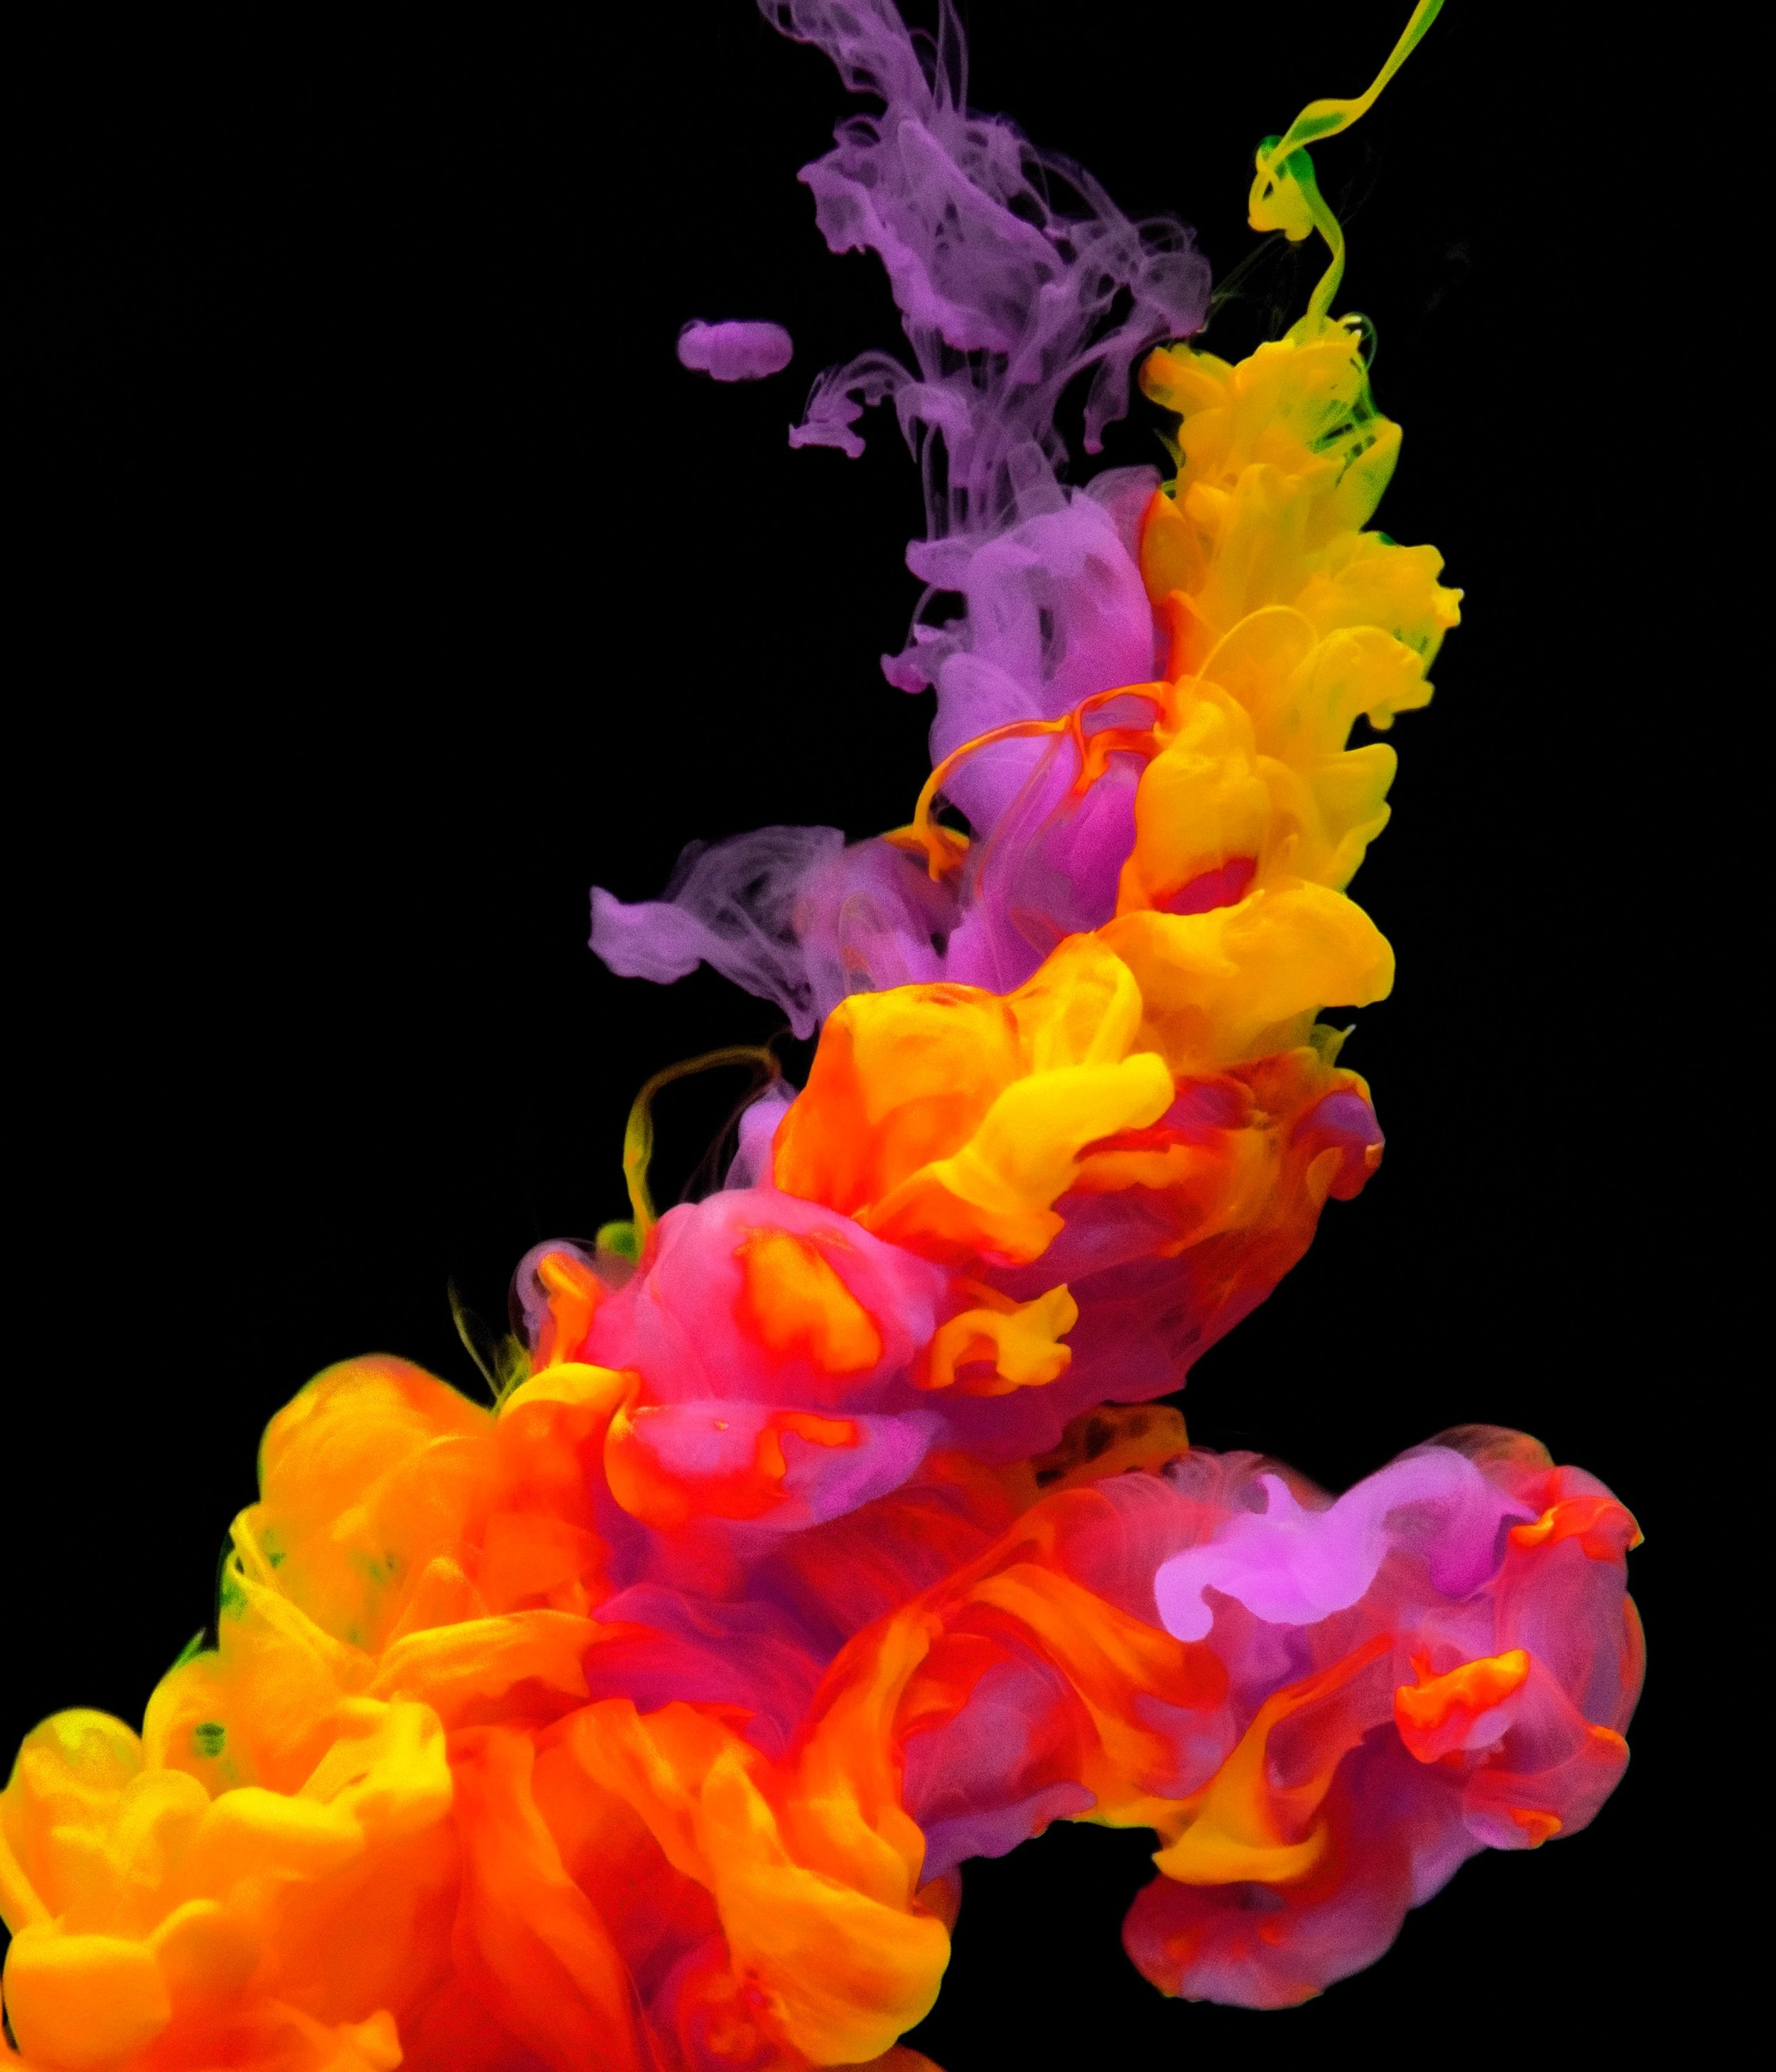 colorful-colourful-smoke-1065714.jpg